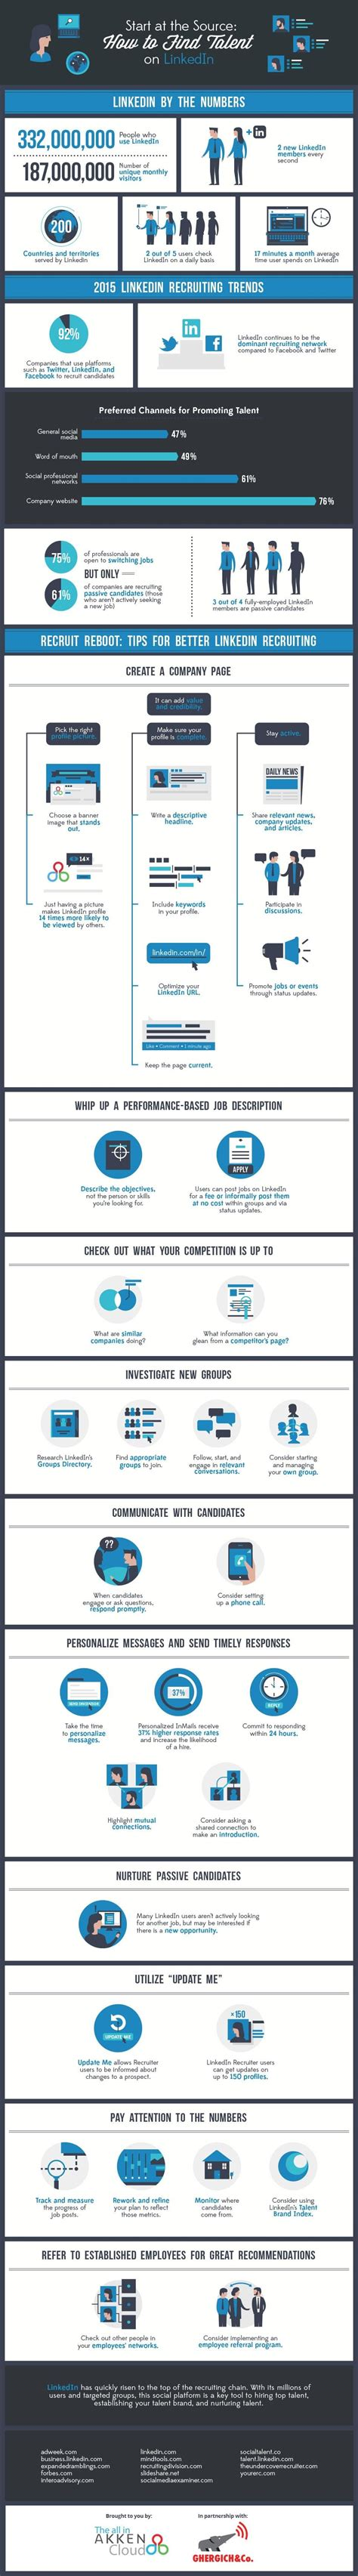 How To Search For On Linkedin How To Find Top Talent On Linkedin Infographic